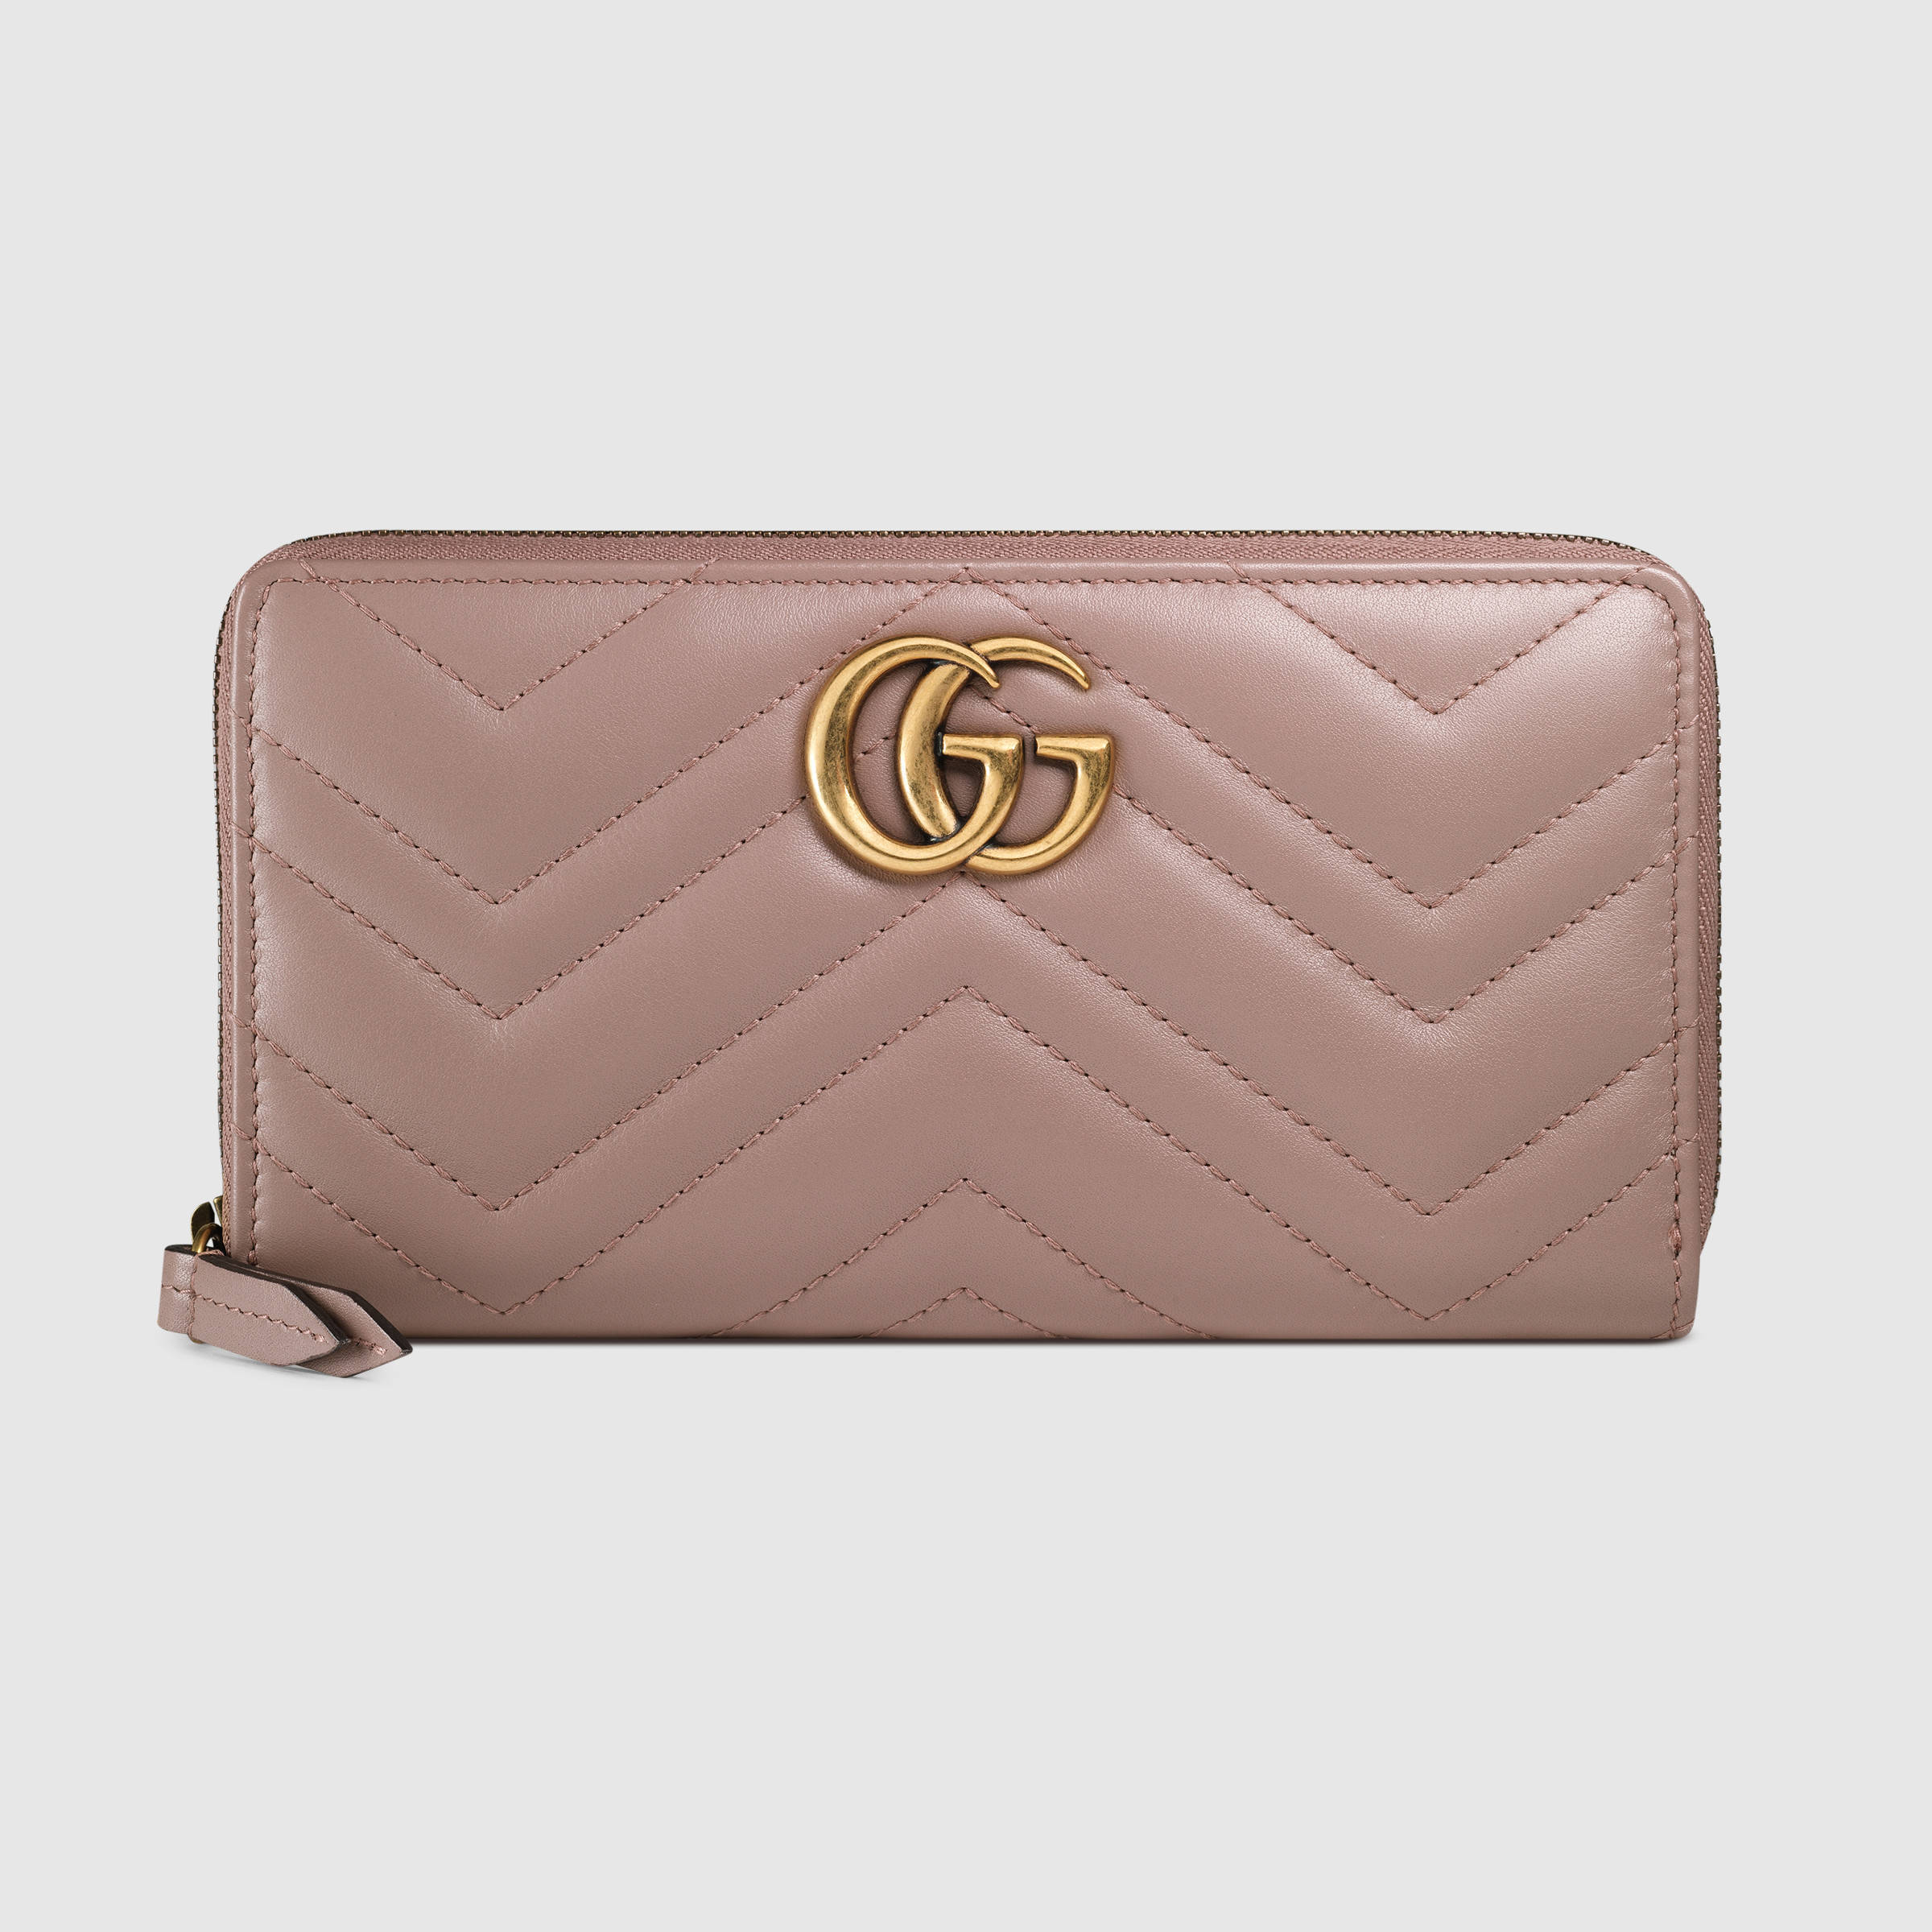 【関税負担】 GUCCI GG MARMONT ZIP AROUND WALLET